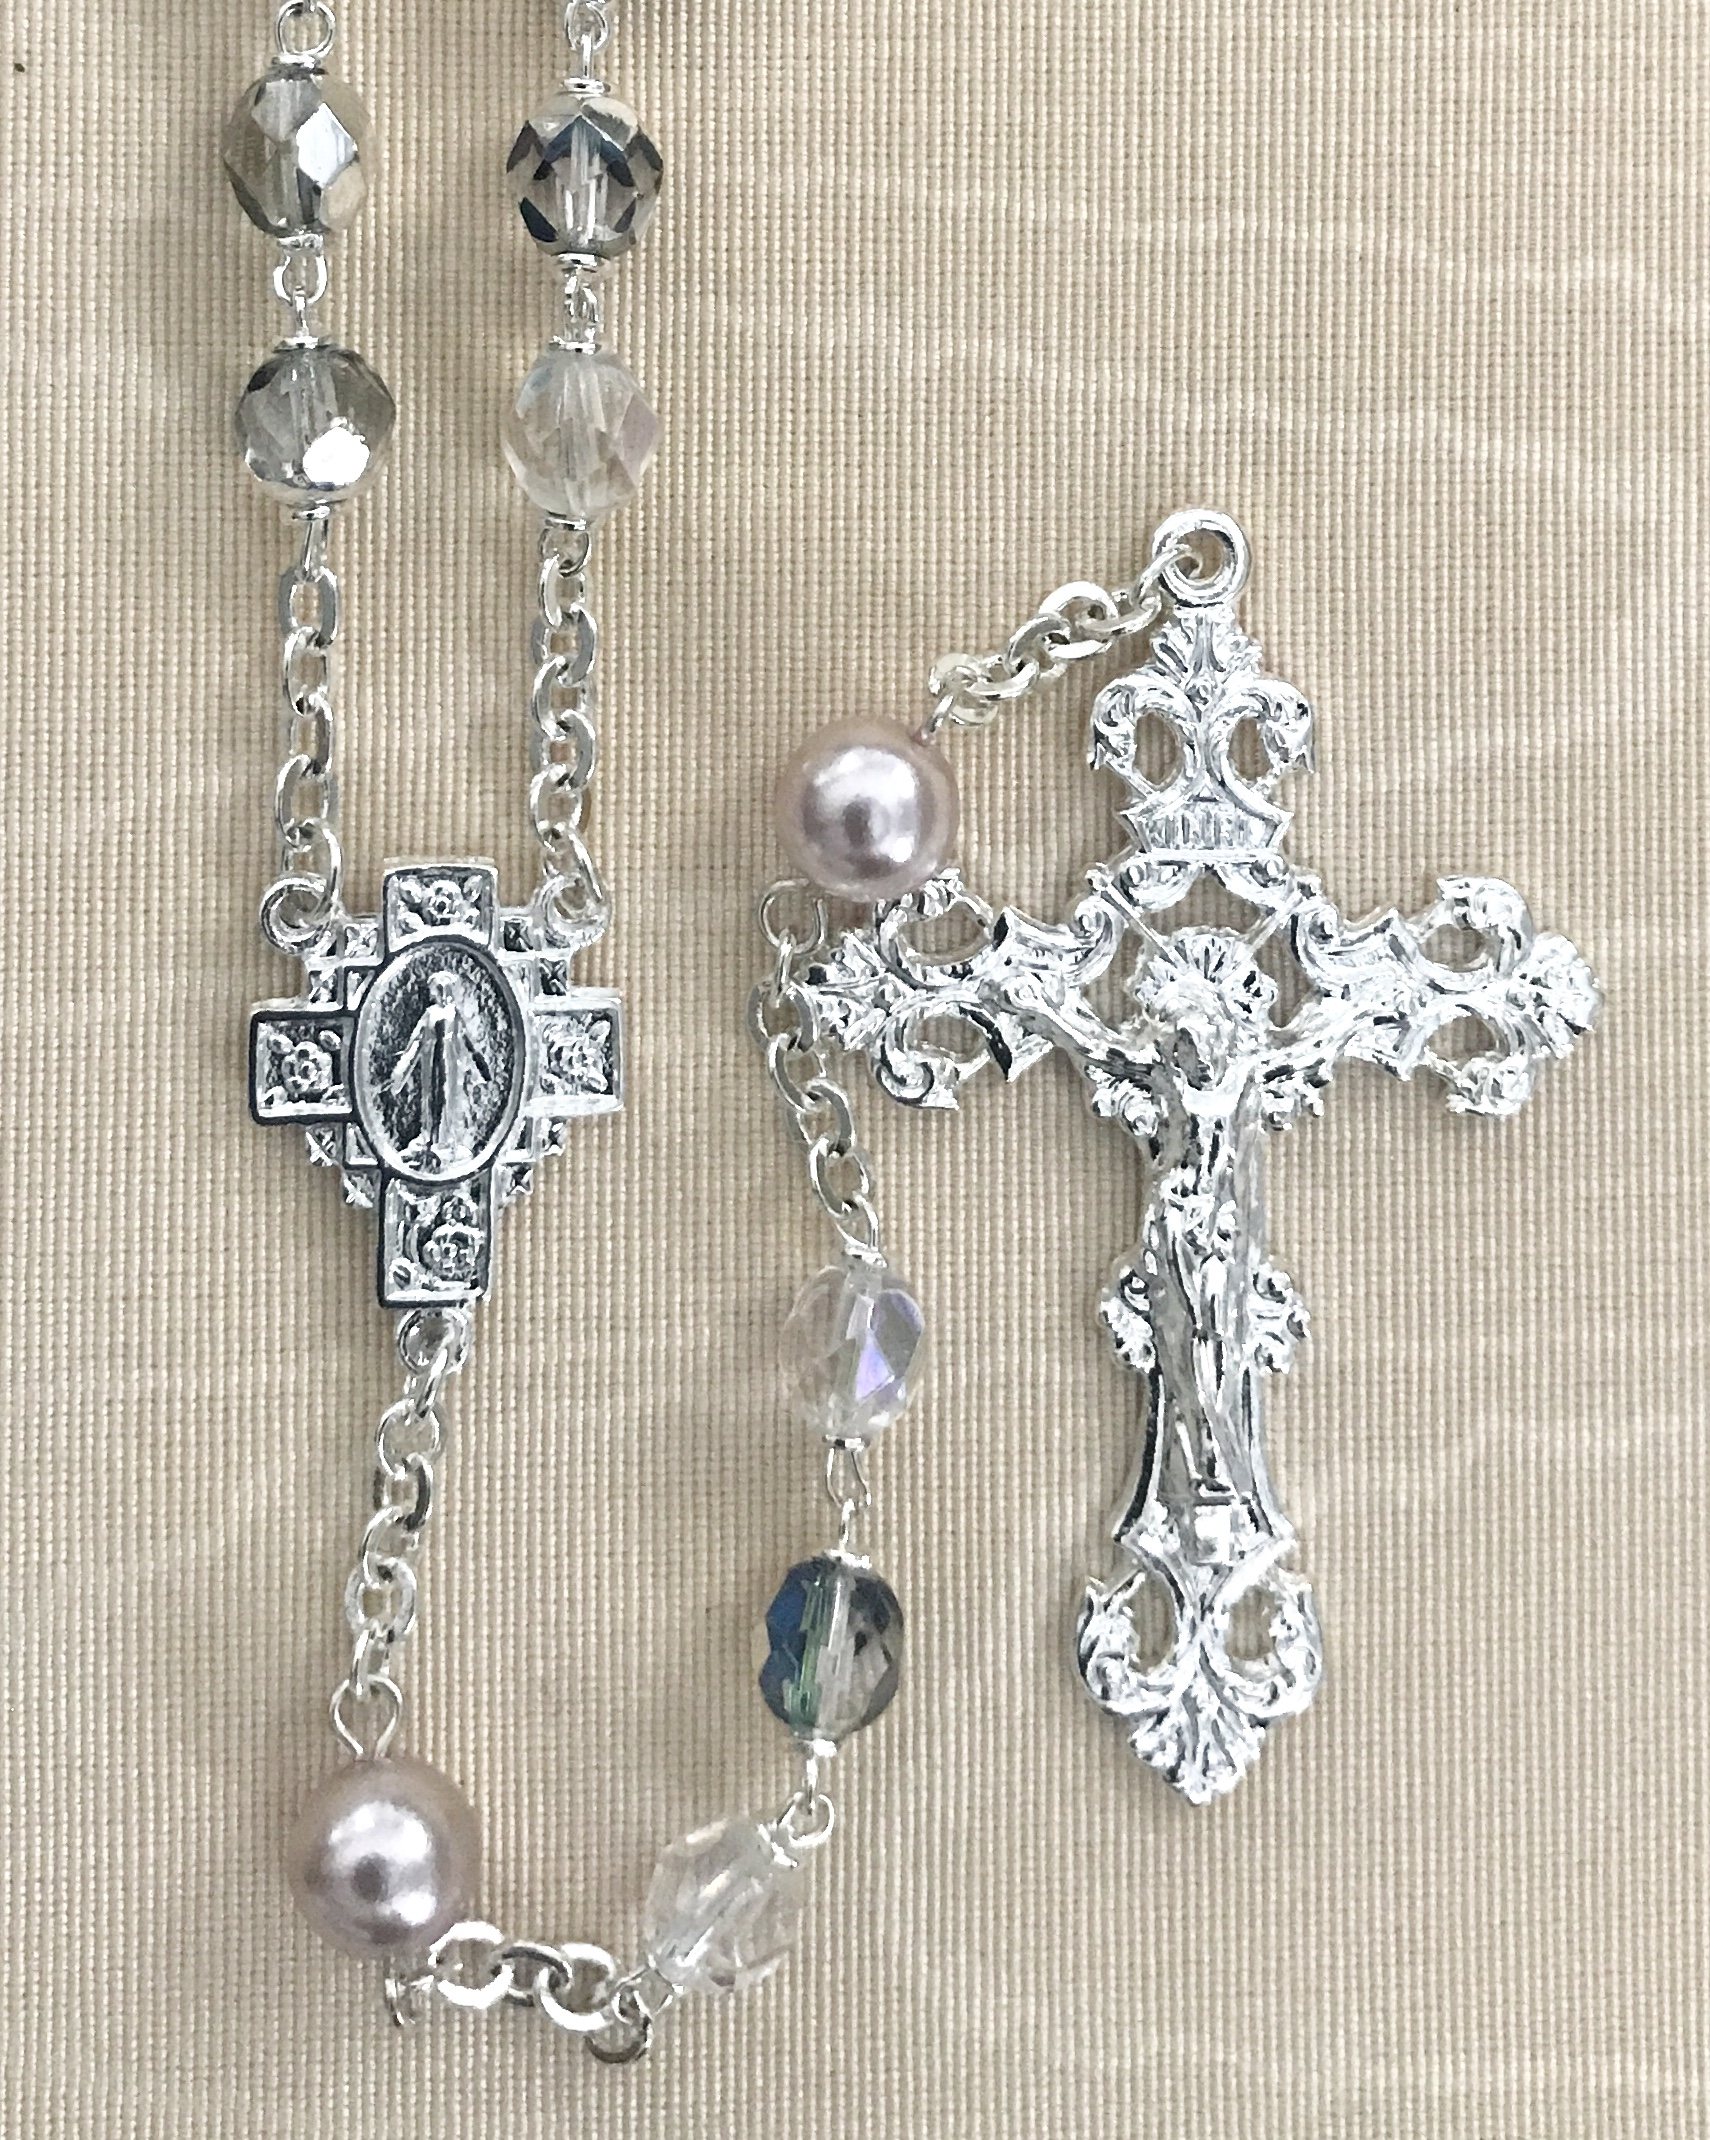 7mm CRYSTAL AB WITH LIGHT AMETHYST  PEARL OUR FATHER BEADS STERLING SILVER PLATED ROSARY BOXED